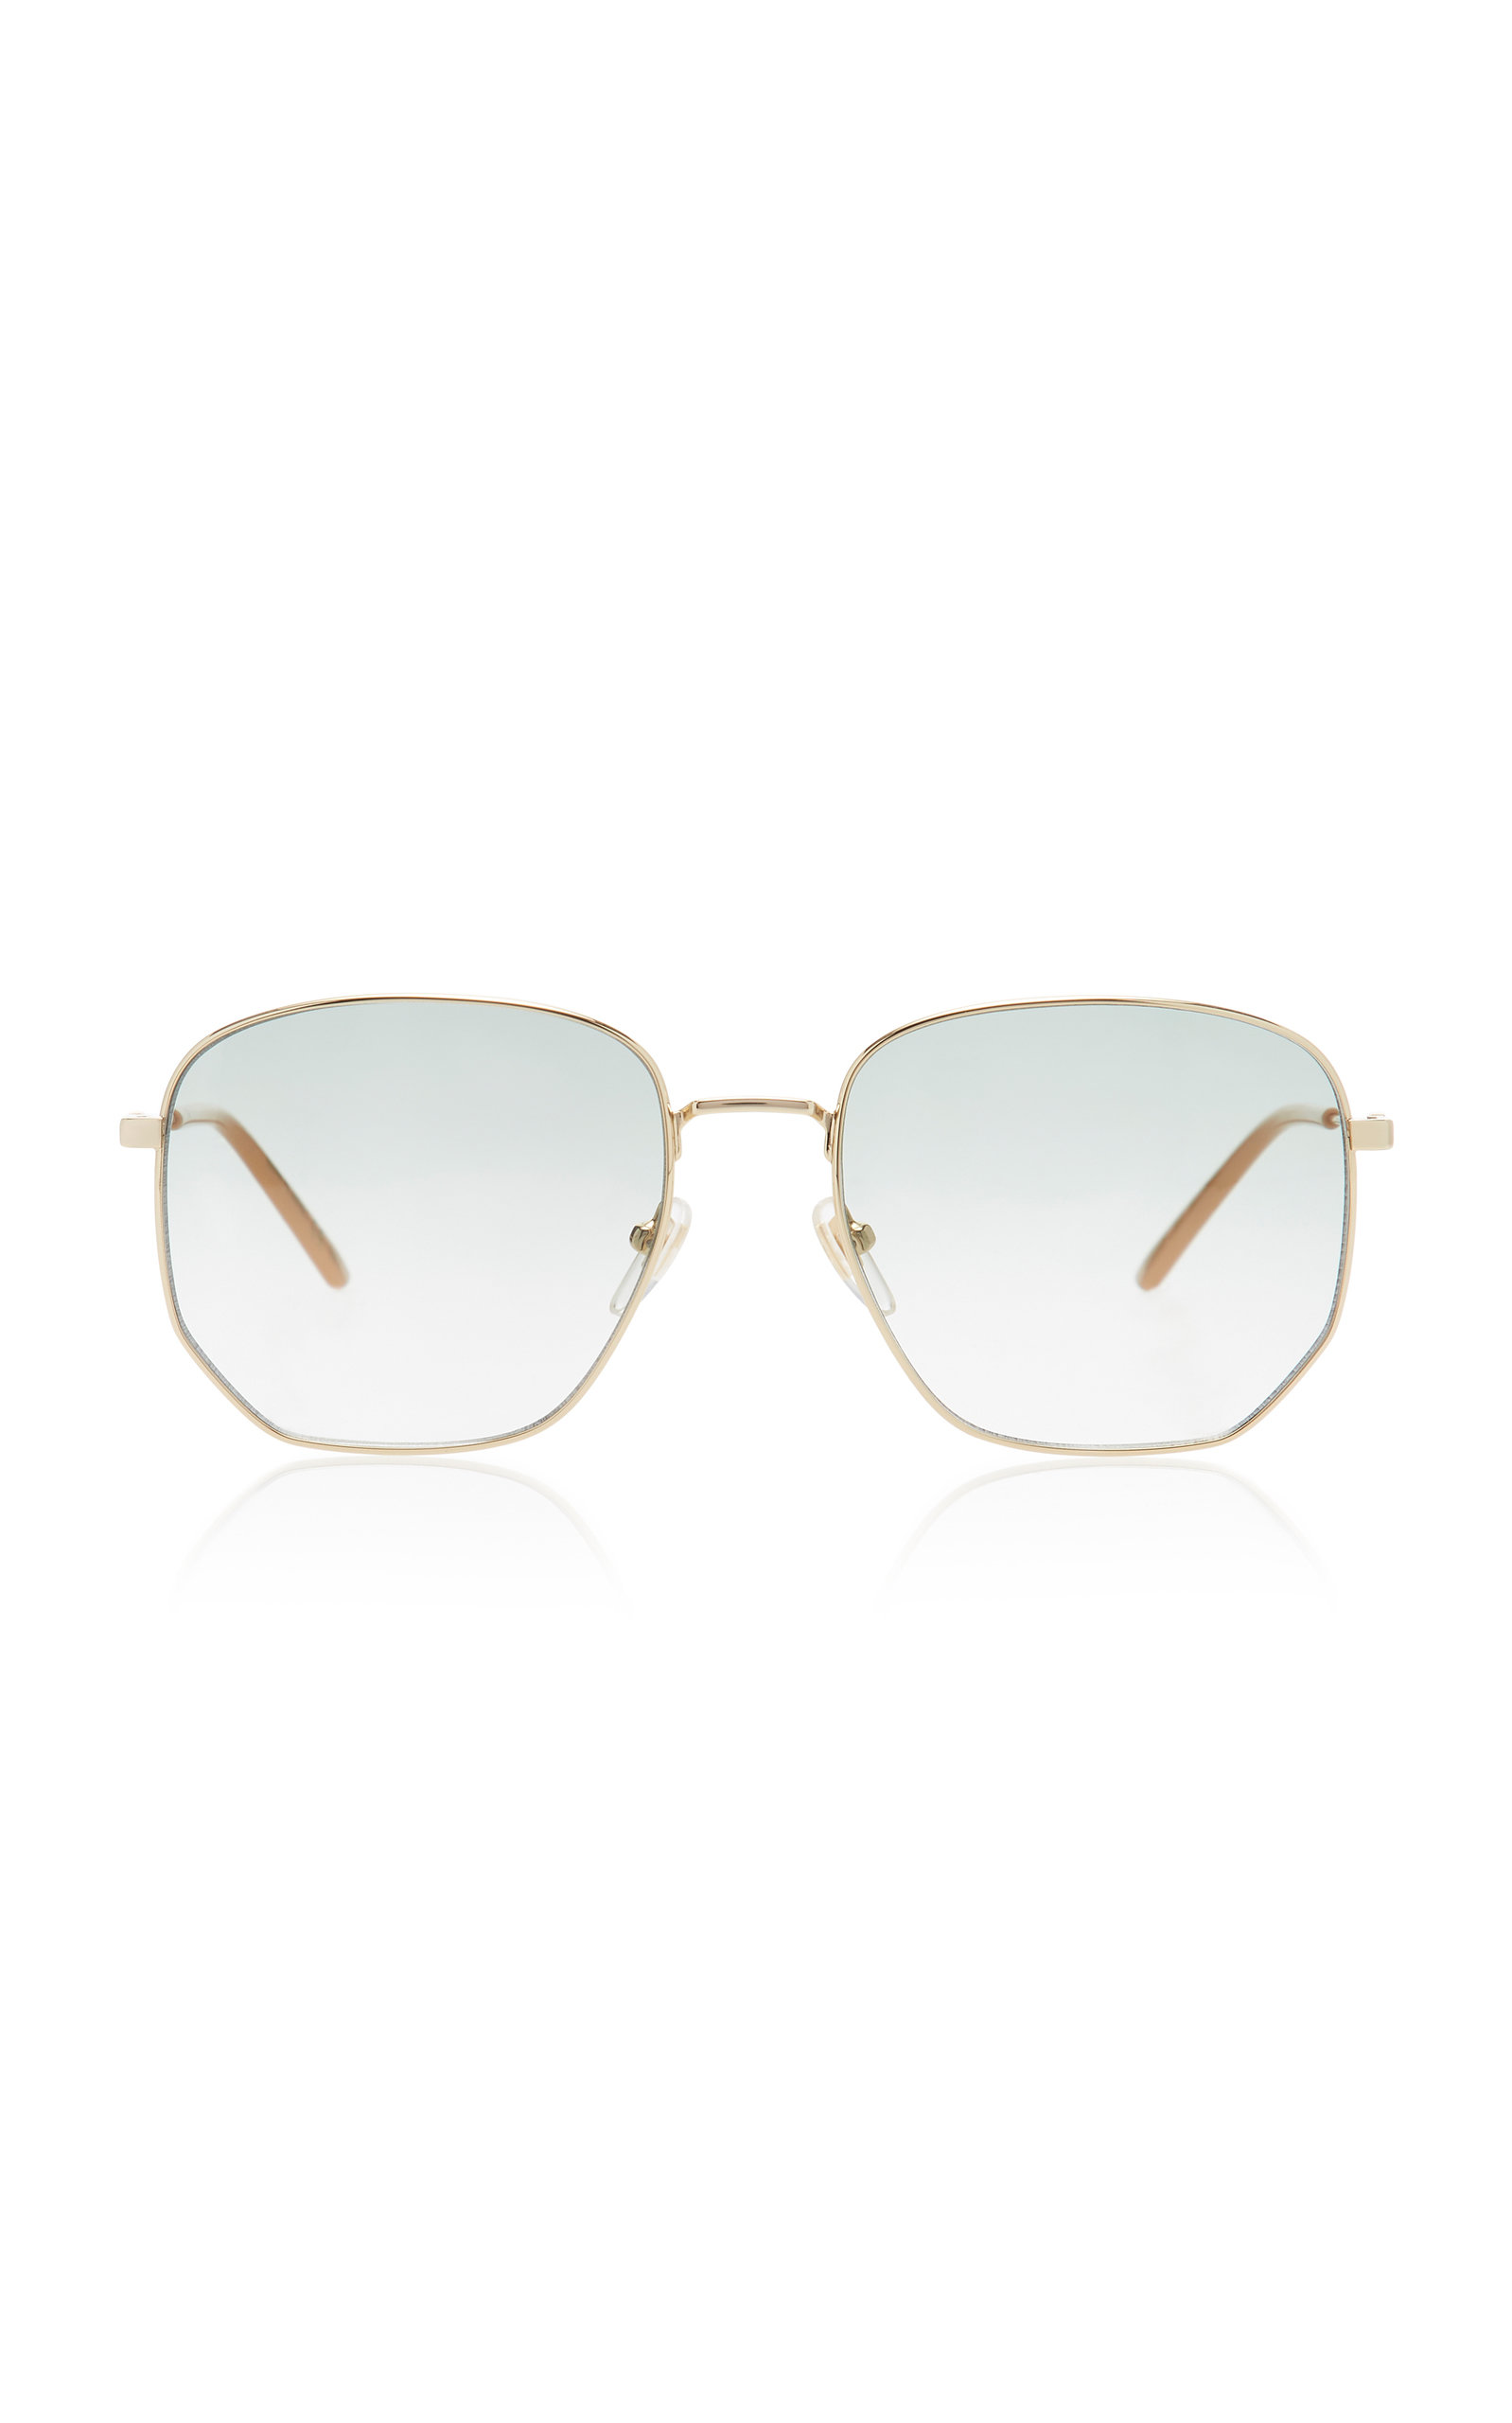 05659bc376c2a Hexagonal Gold-Tone Sunglasses by Gucci Sunglasses